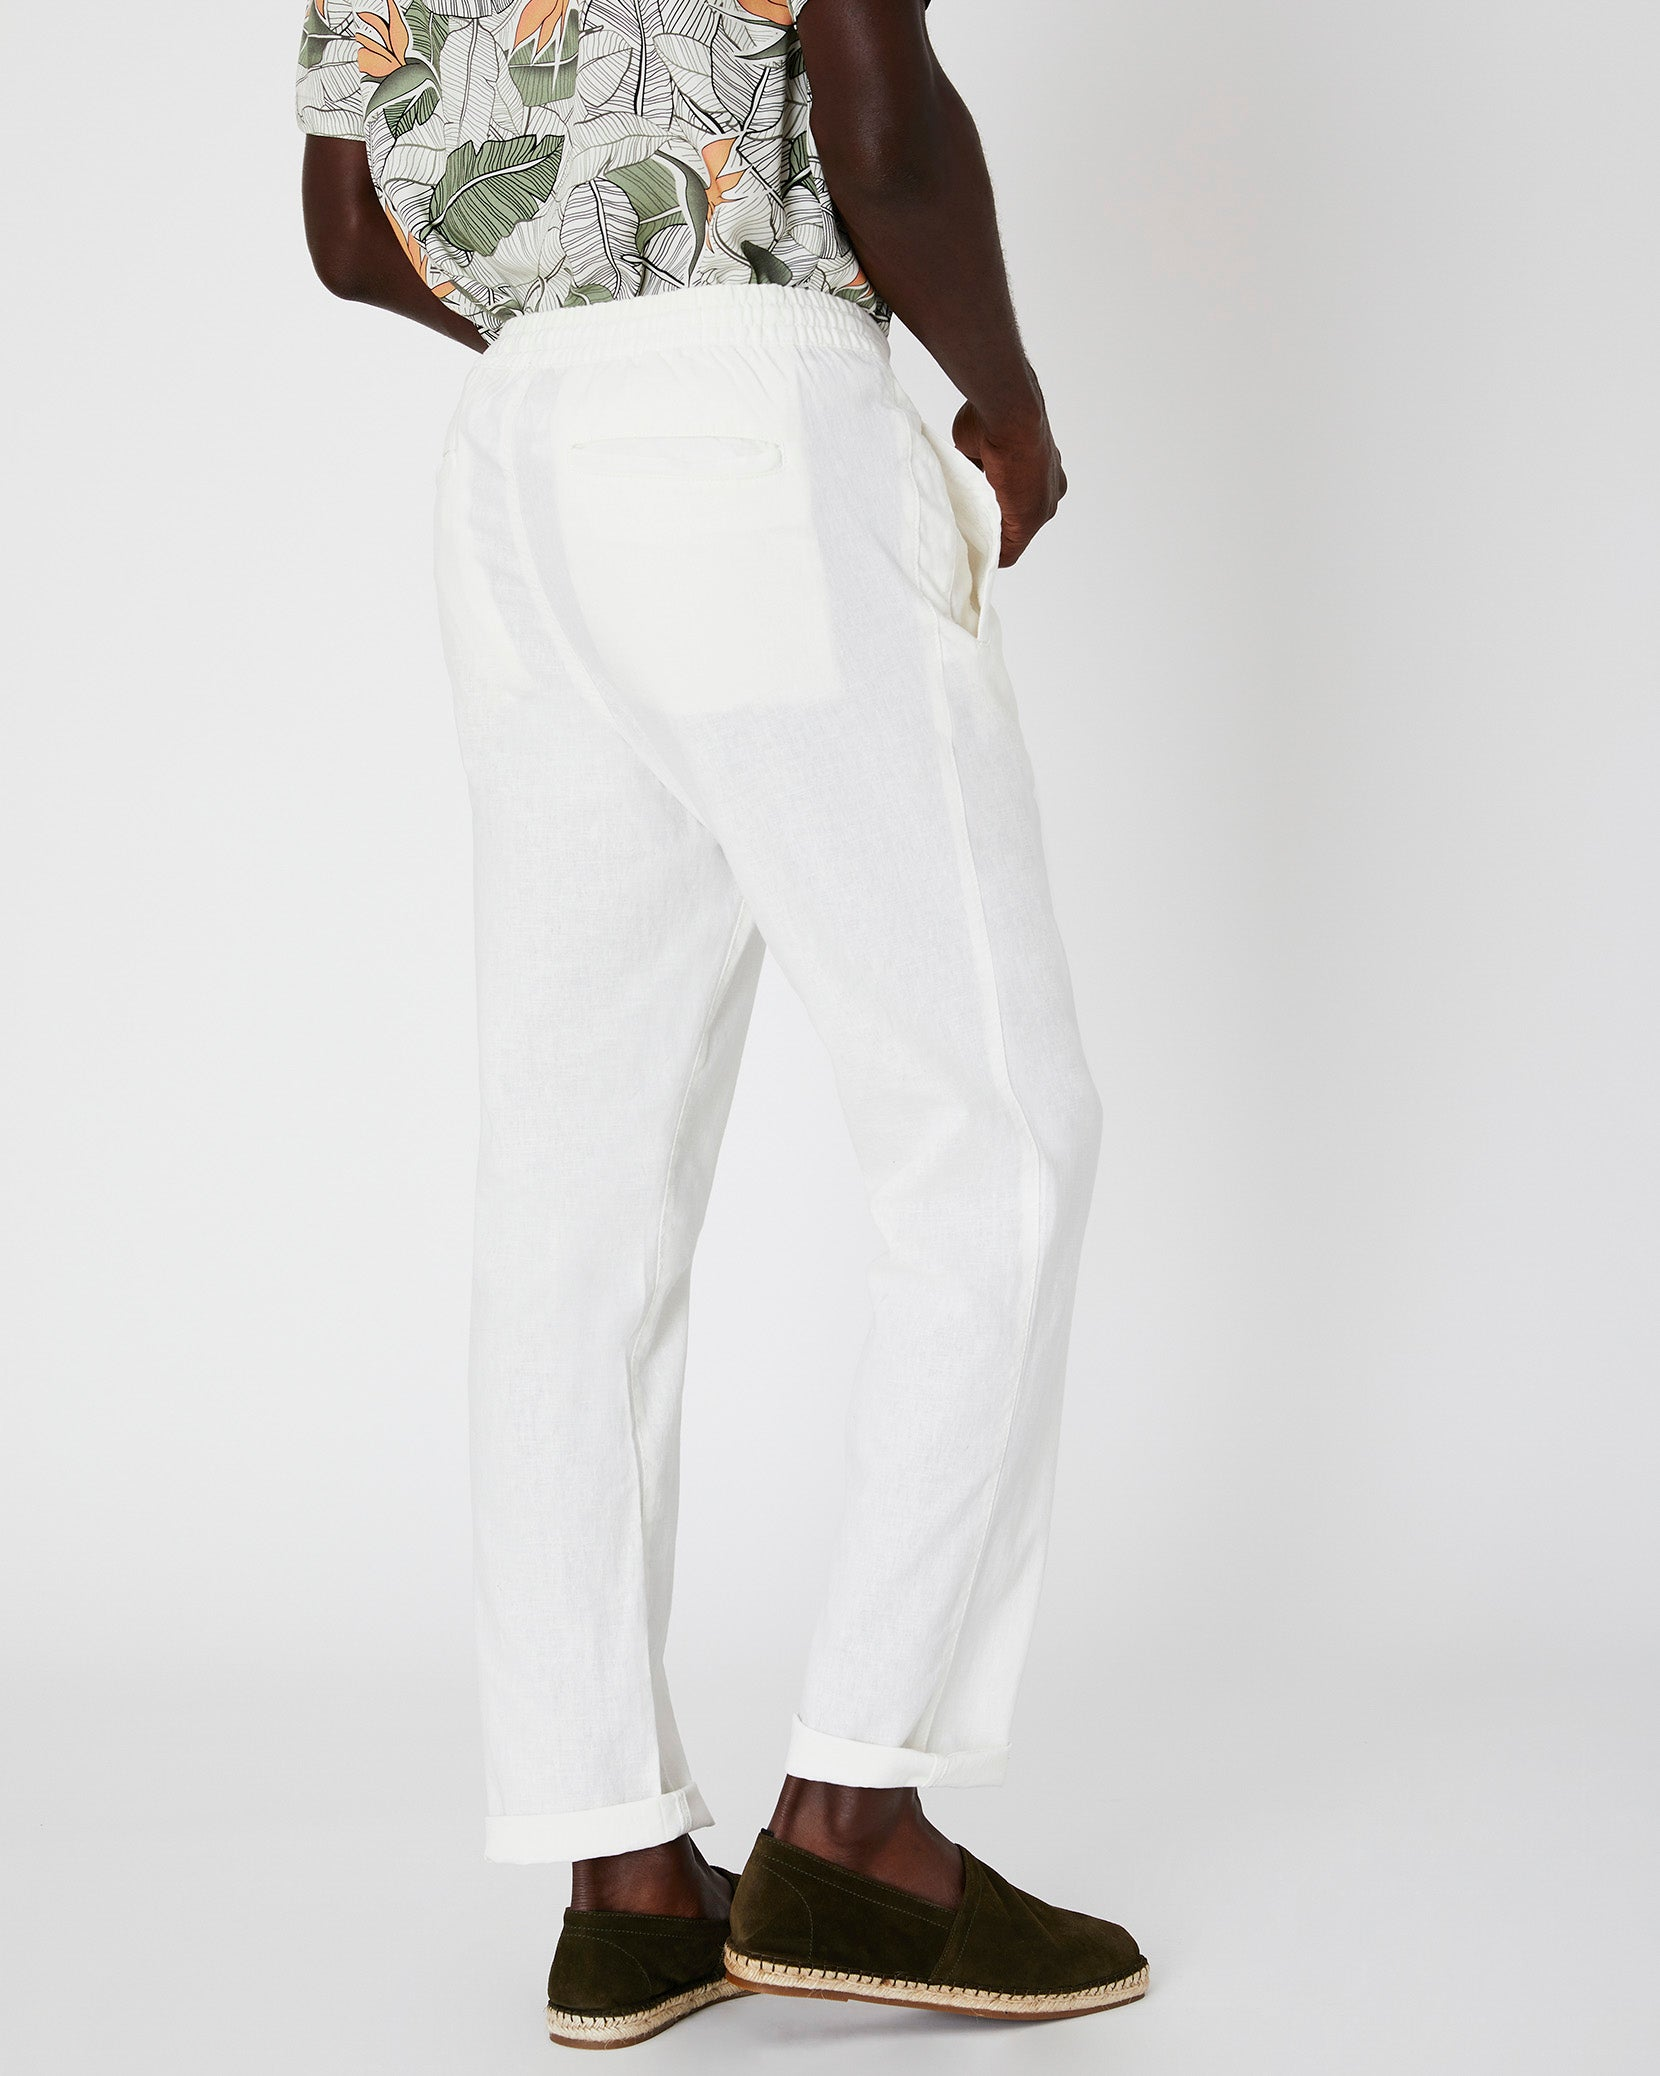 Collin Linen Pant in White - 9 - Onia